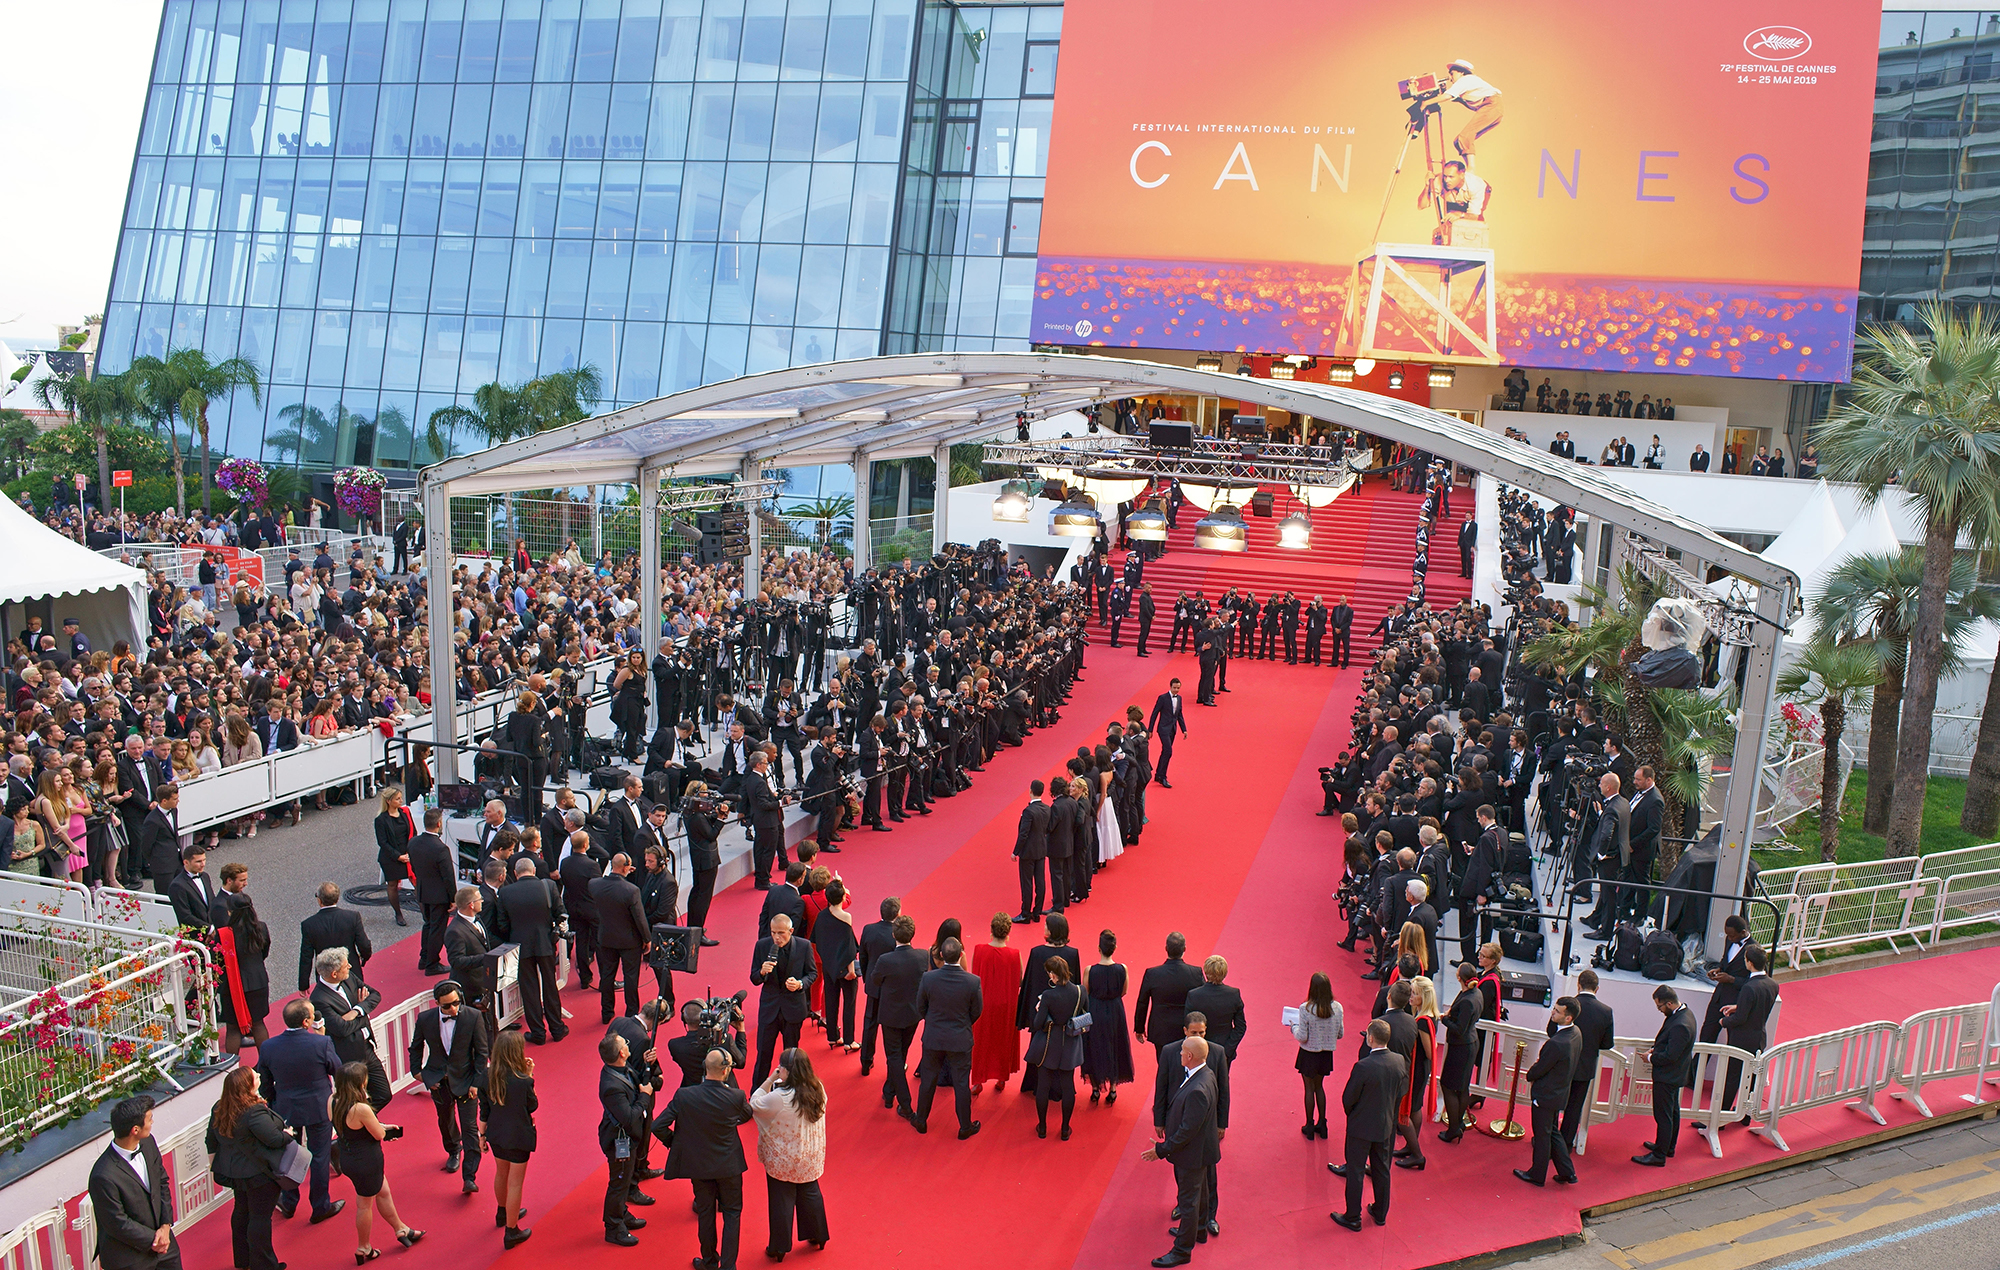 Cannes movies